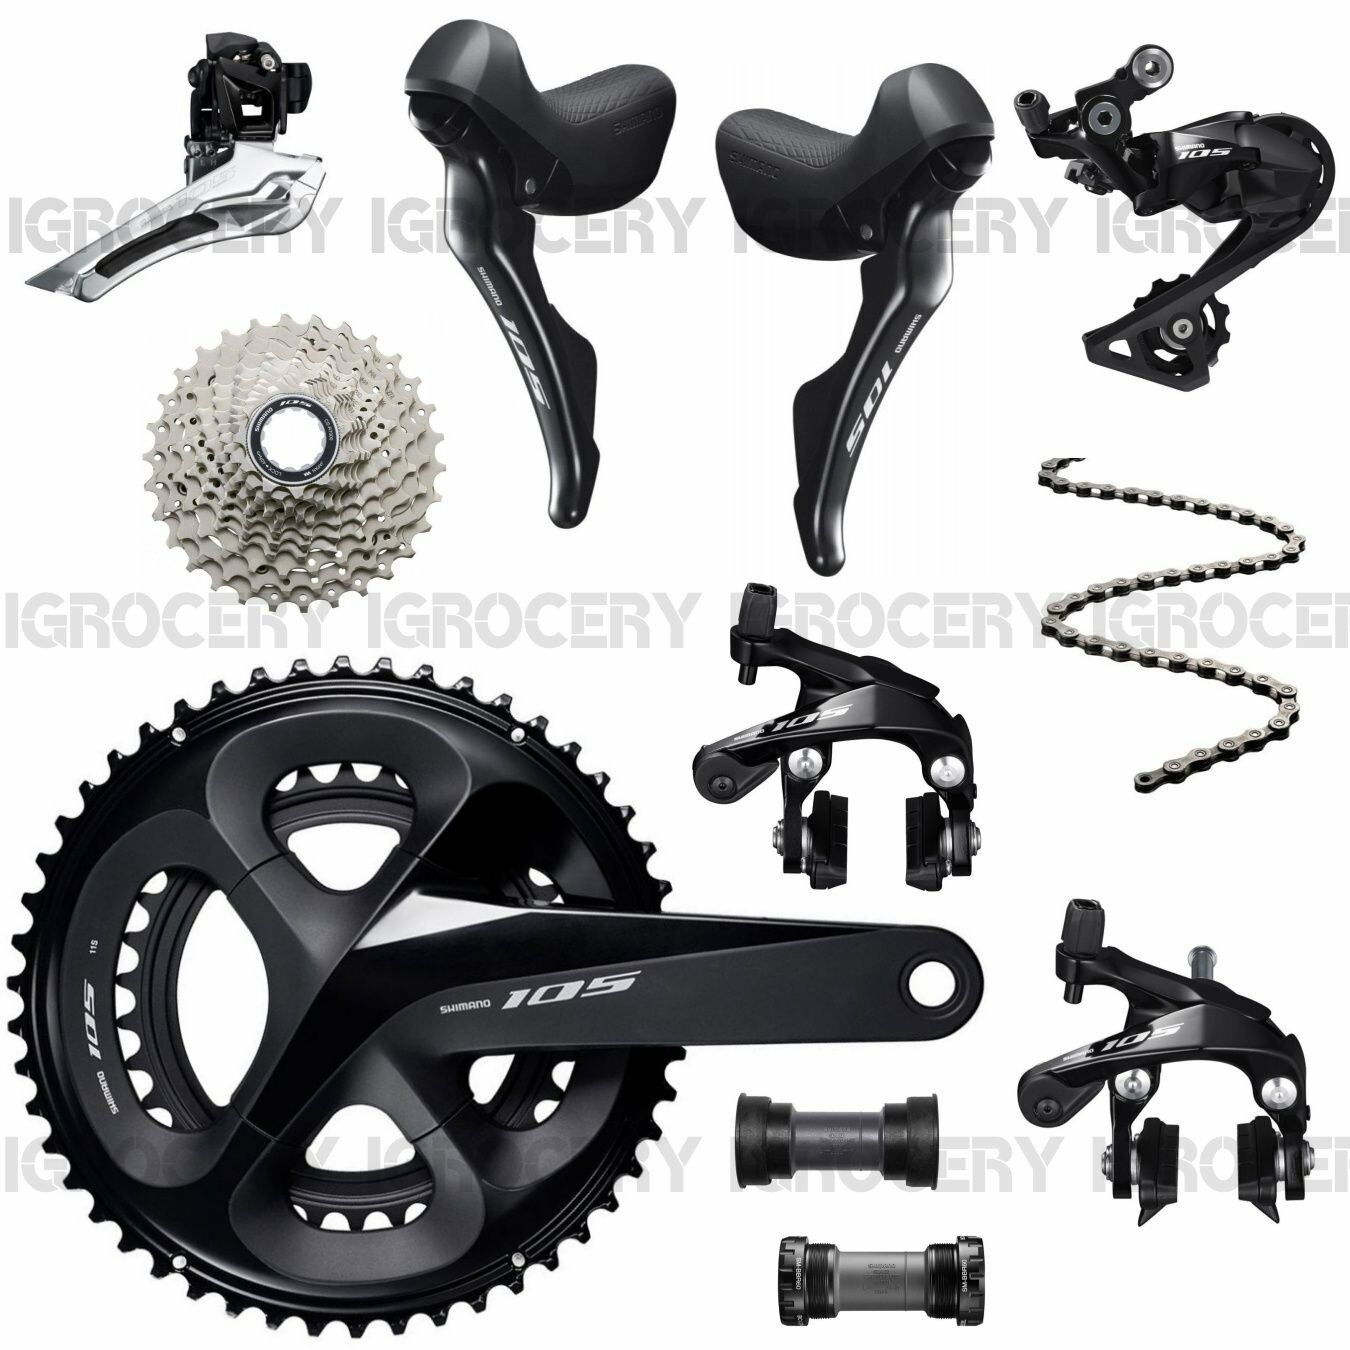 Shimano 105 R7000 Groupset 2x11-speed Road Bike 8Pcs Mechanical New (50 34T SS)